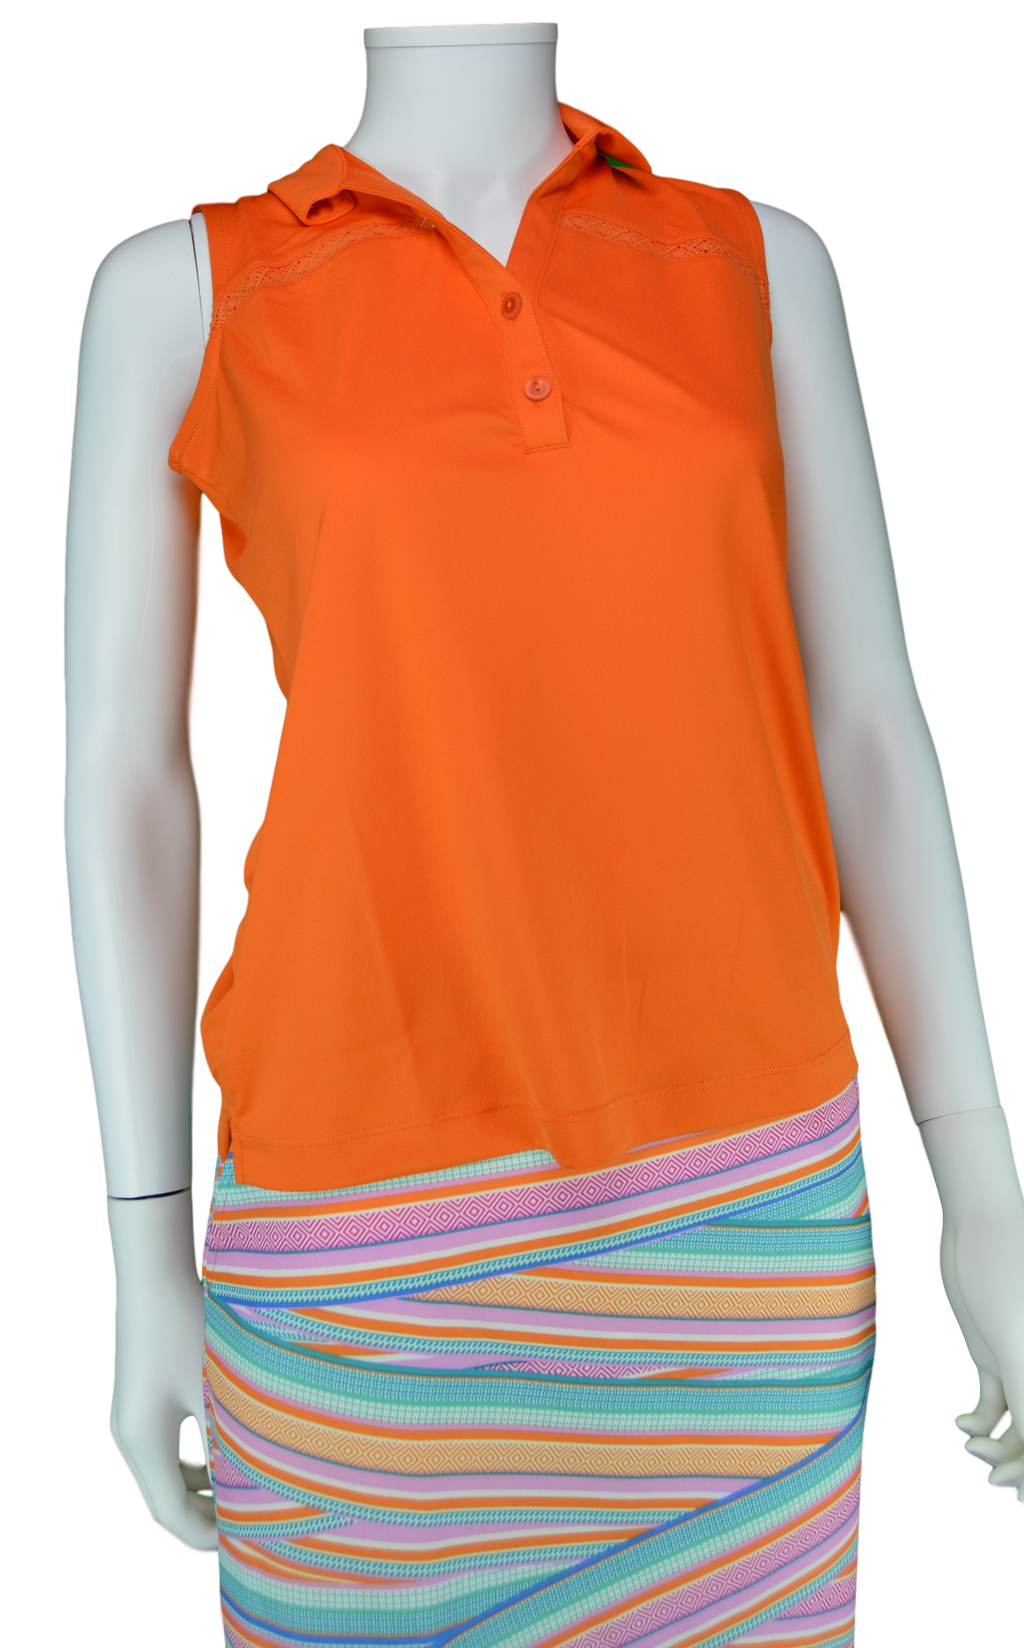 EP Pro Cassis Tour Tech Sleeveless Polo - Orange